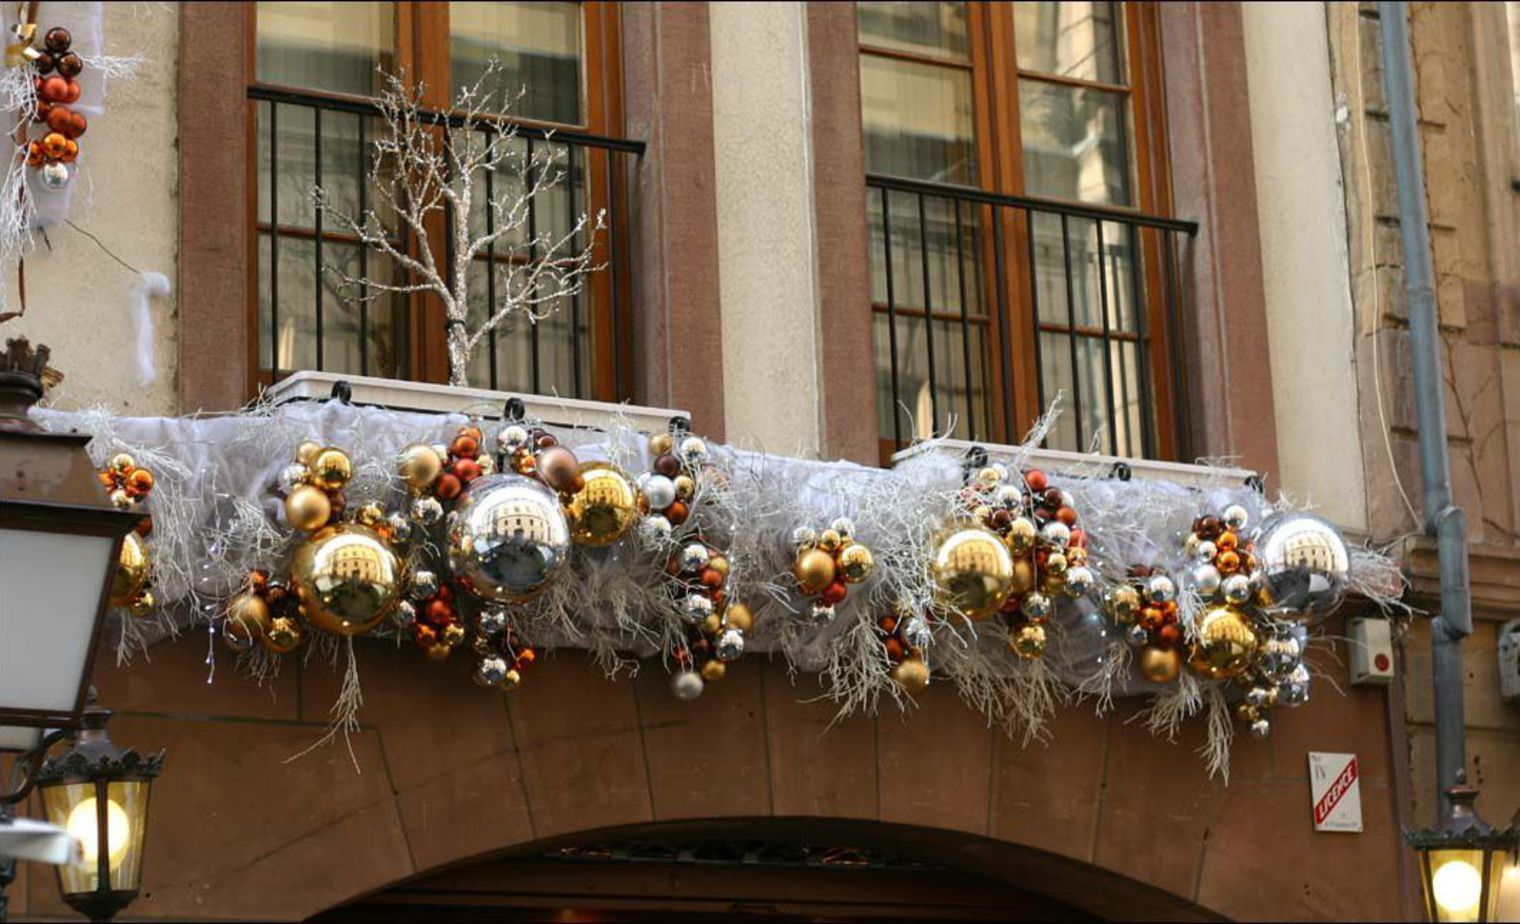 D coration noel exterieur balcon exemples d 39 am nagements for Decor de noel exterieur